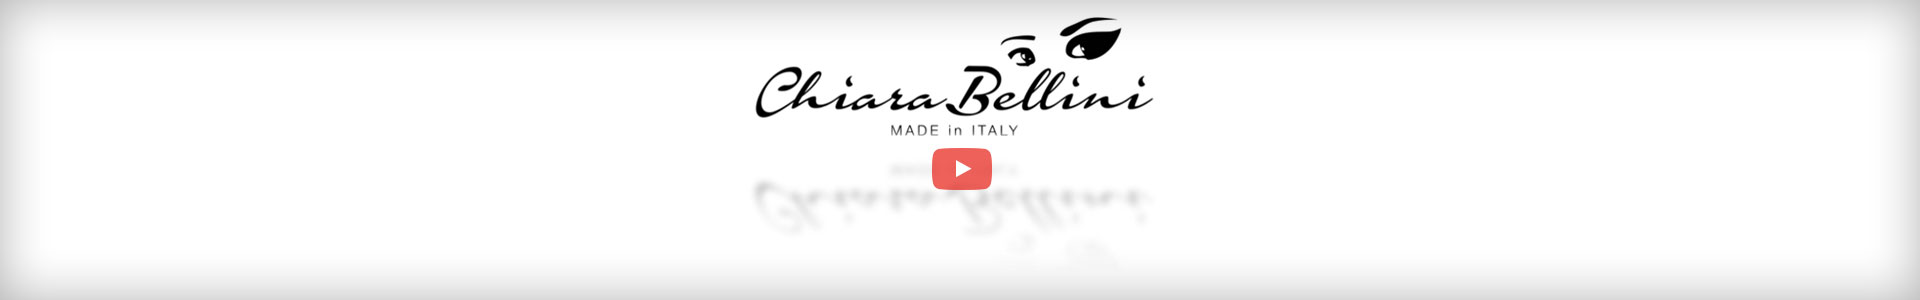 The new corporate video of Chiara Bellini is online